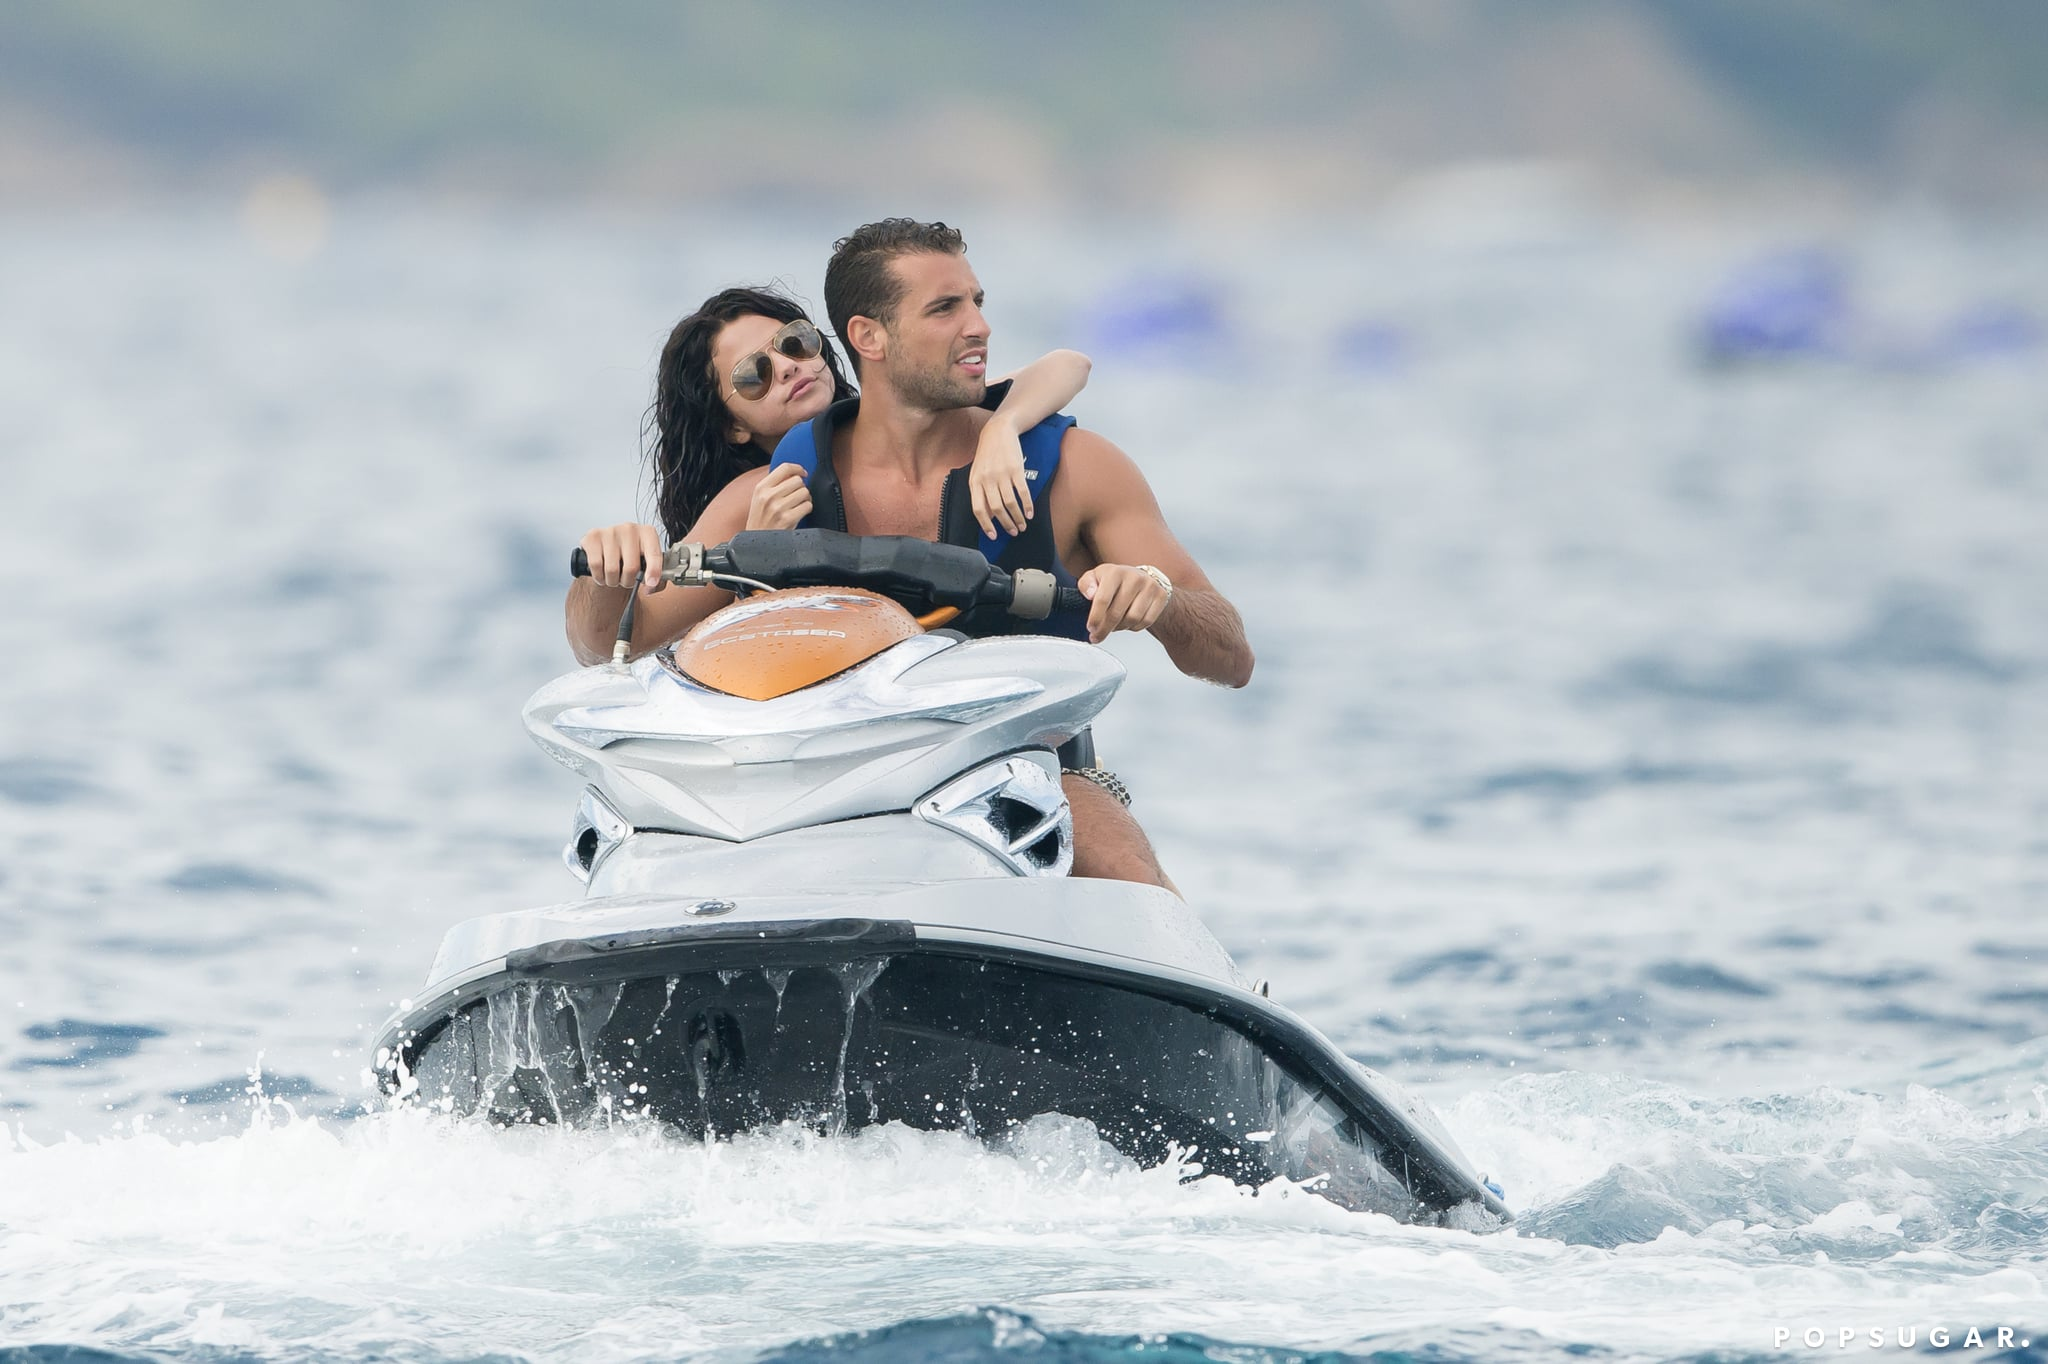 Selena Gomez went water-skiing with a mystery man in Saint-Tropez, France, on Tuesday.